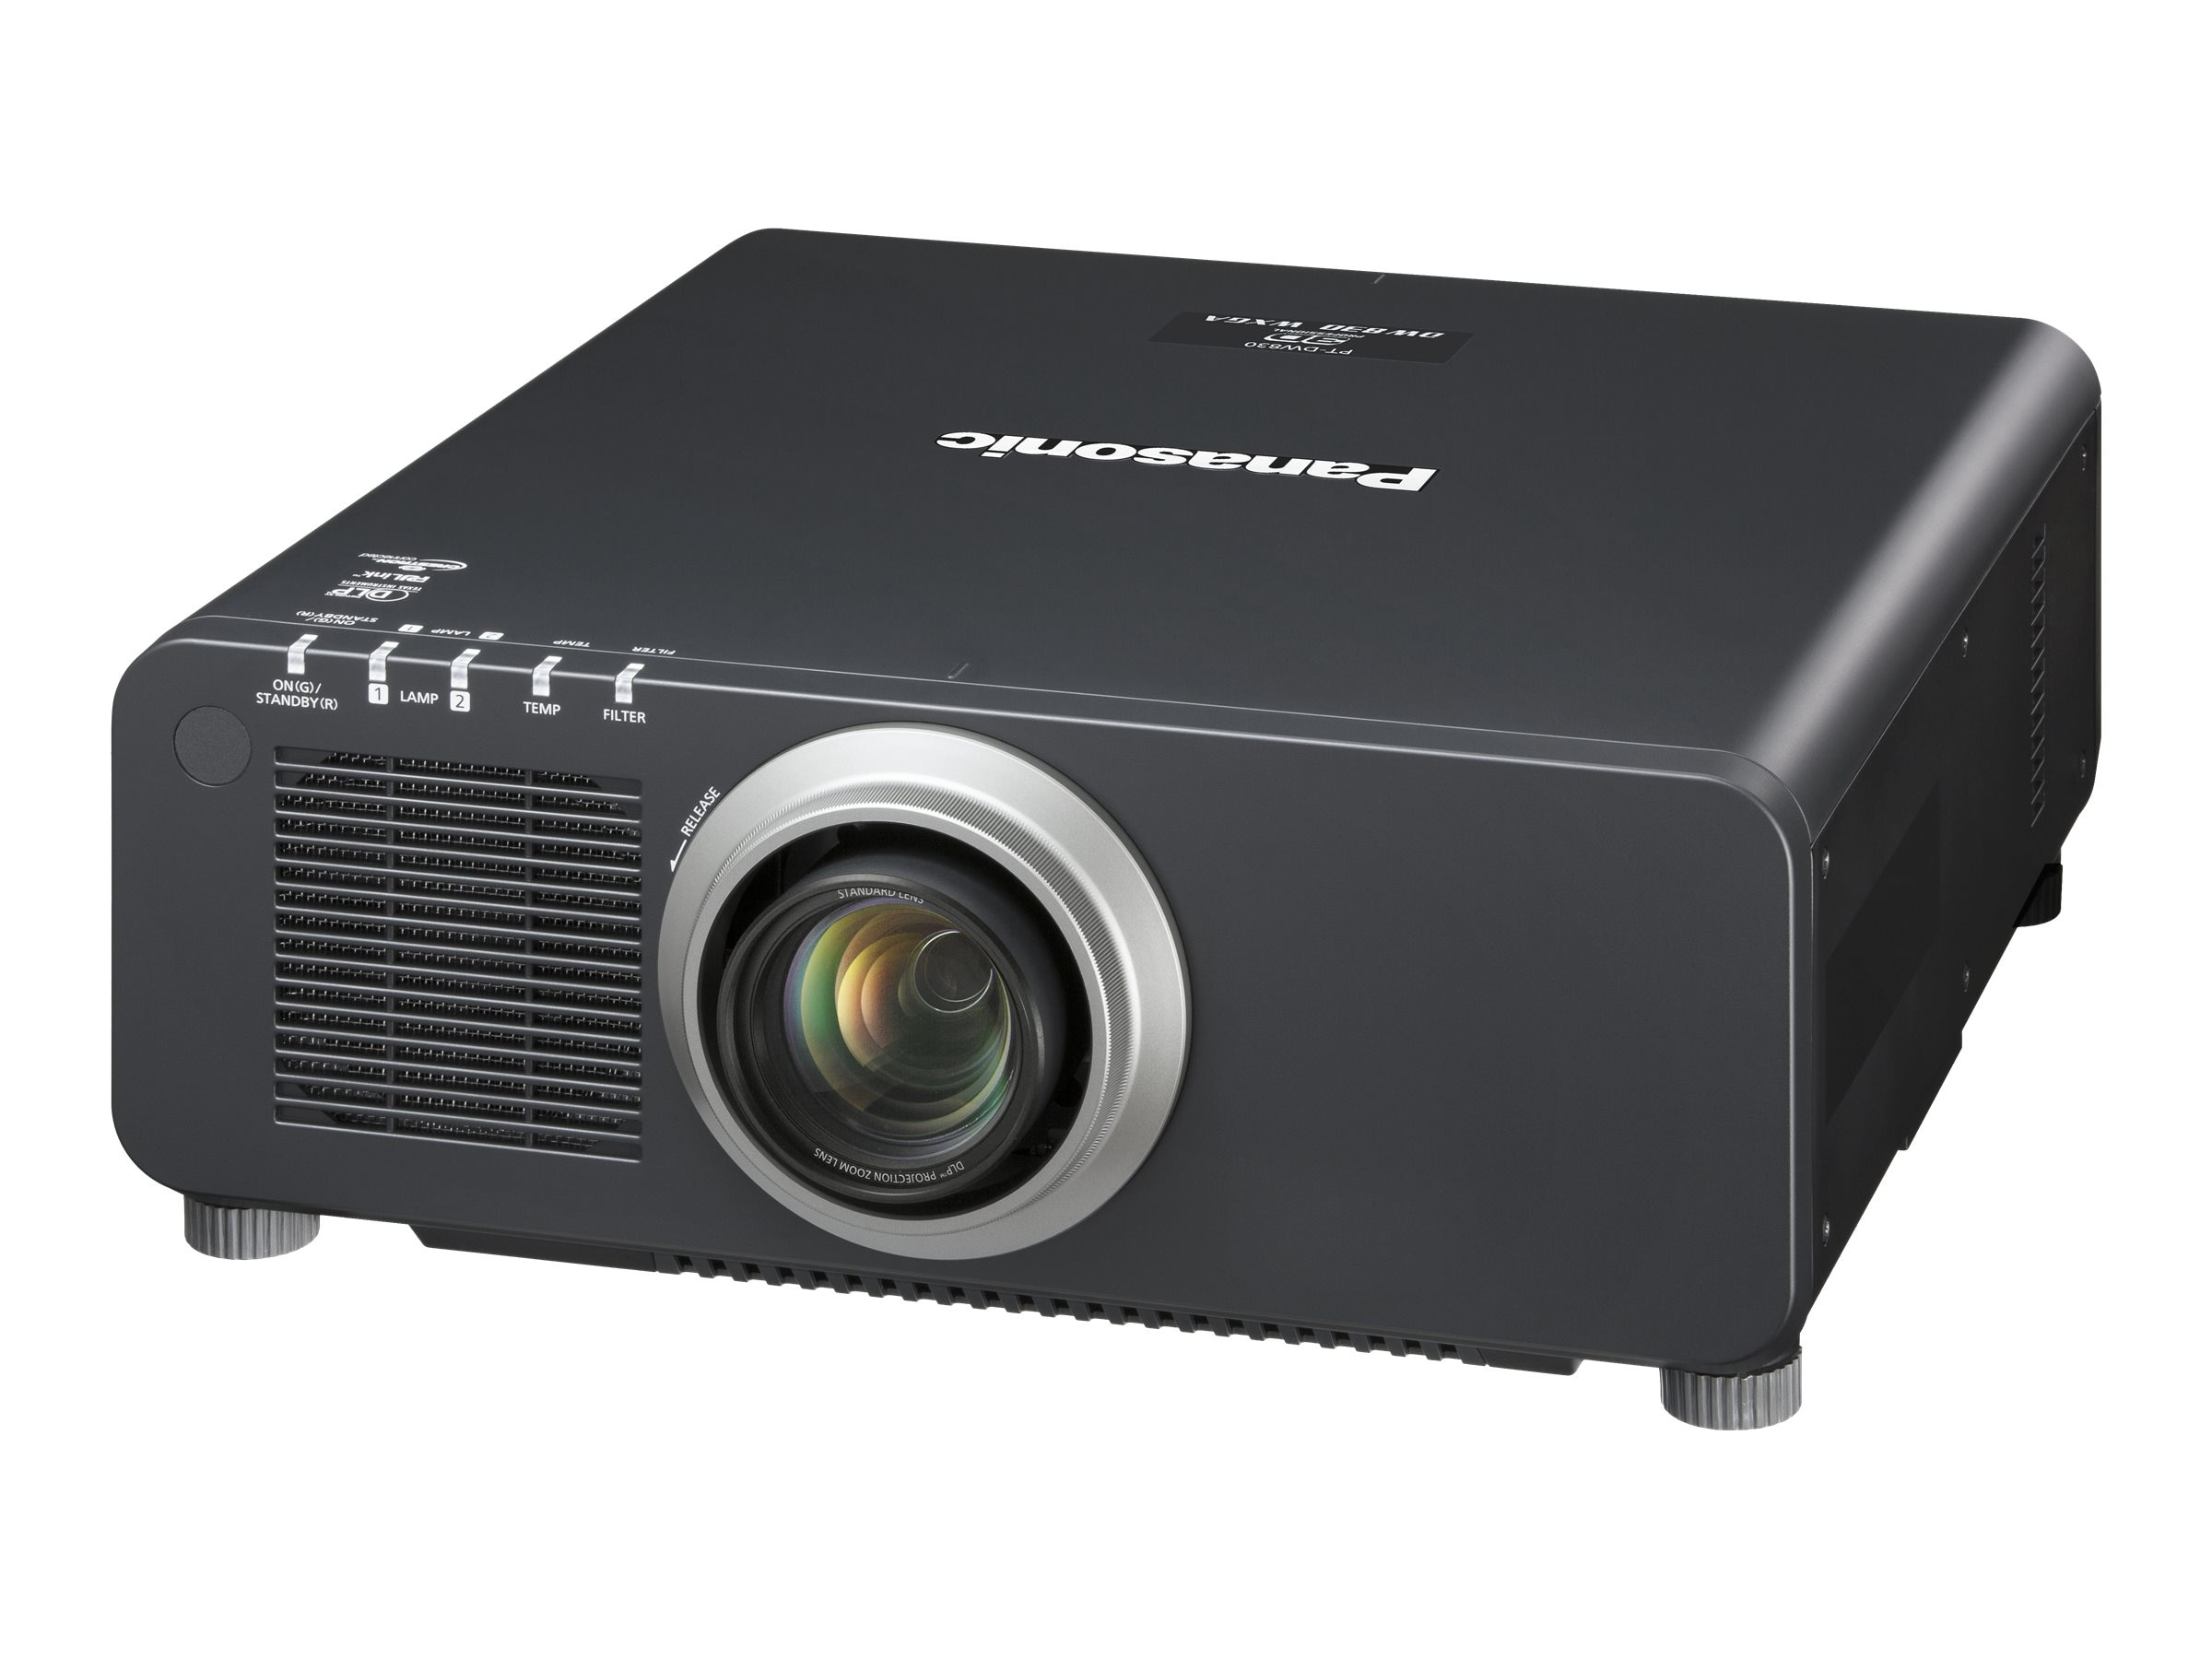 Panasonic PT-DW830UK WXGA DLP Projector, 8500 Lumens, PT-DW830UK, 15950367, Projectors